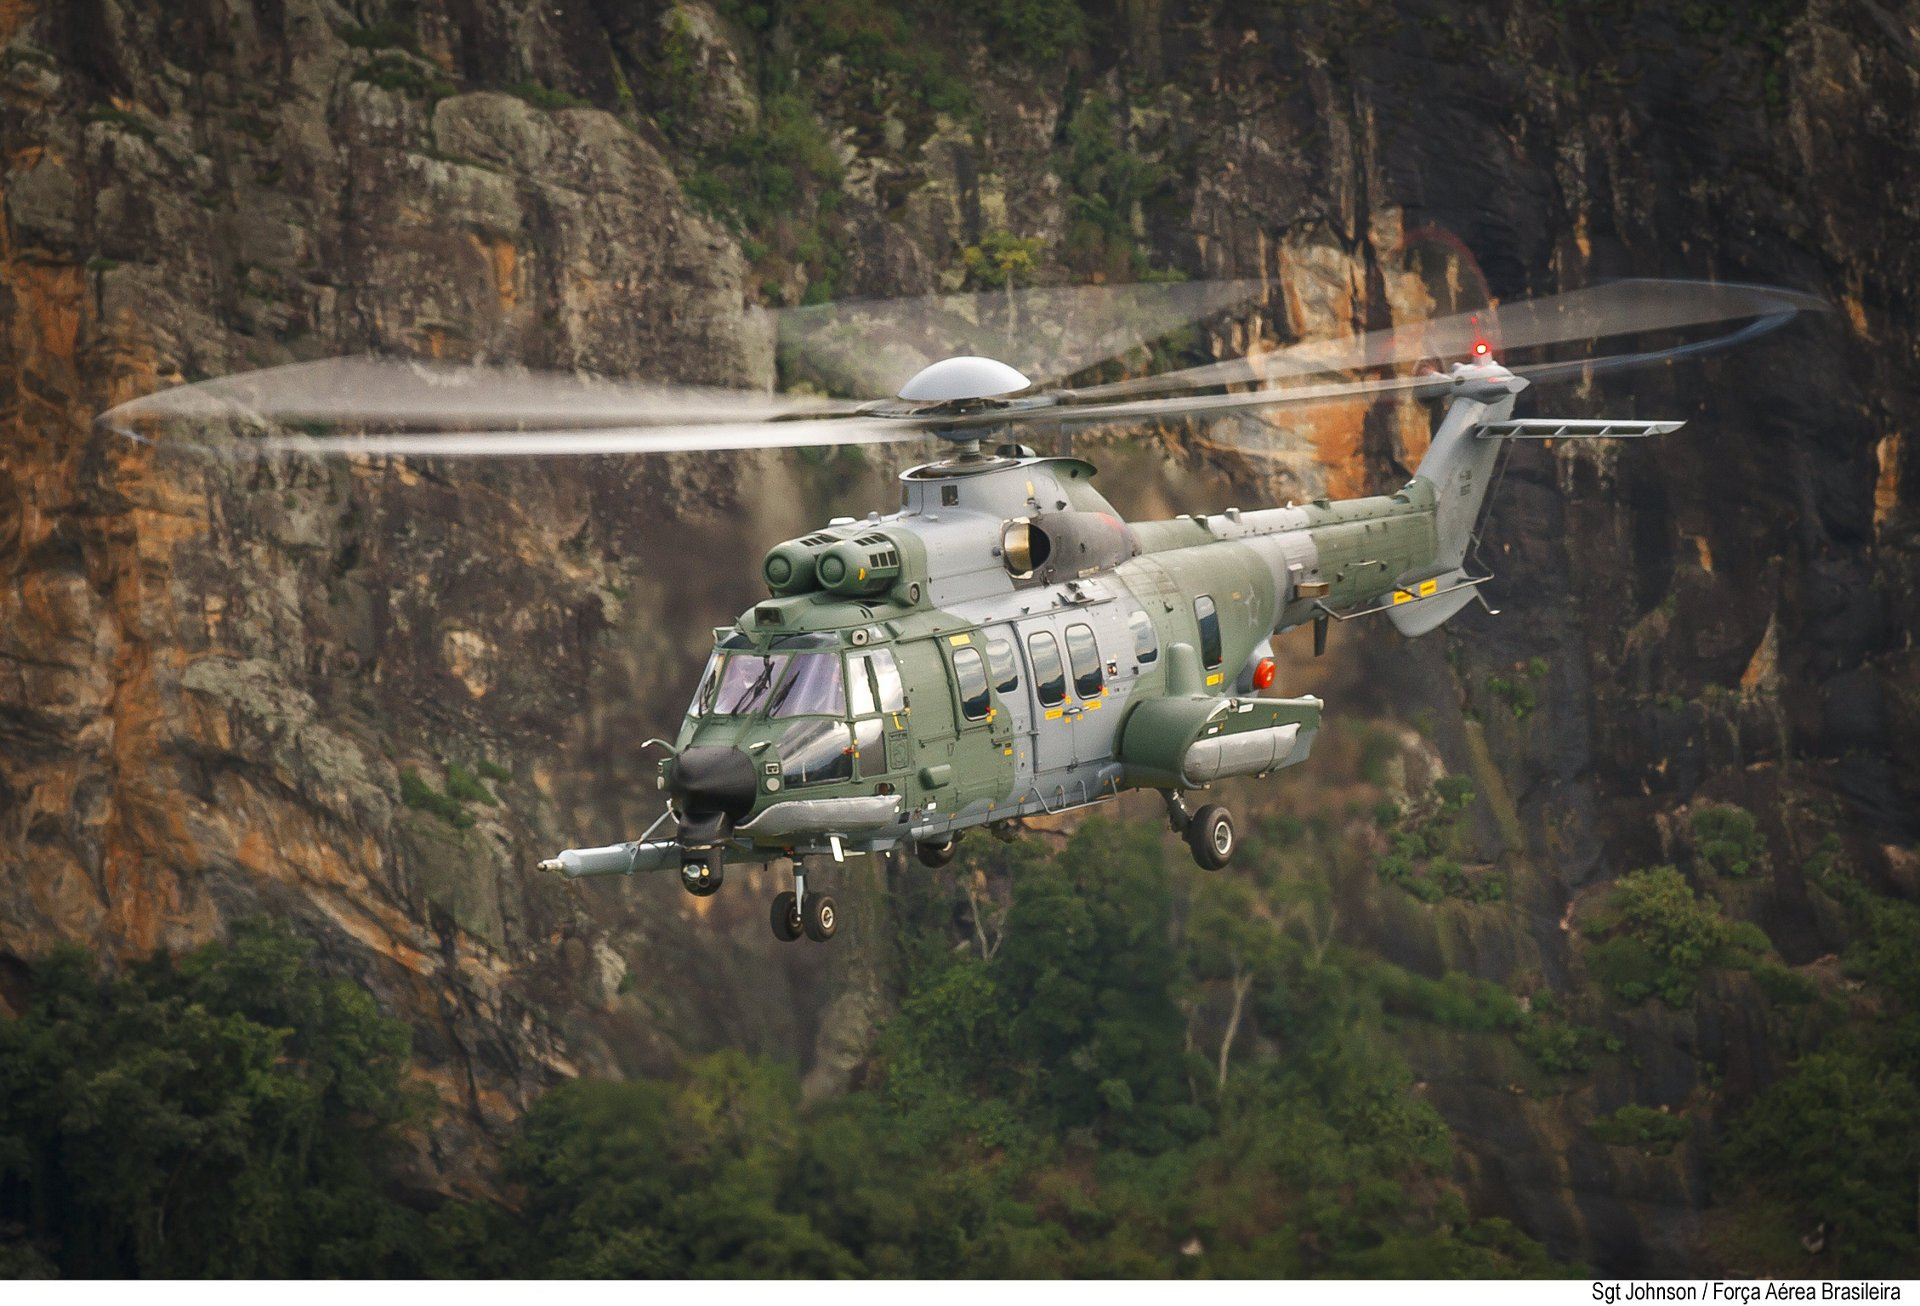 Airbus Helicopters' customer center in Brazil, Helibras, has delivered three additional H225M to the Brazilian Armed Forces. Two are destined for the Brazilian Army and the third for the Brazilian Air Force, bringing to seven the total number of H225M delivered to Brazil in 2015.